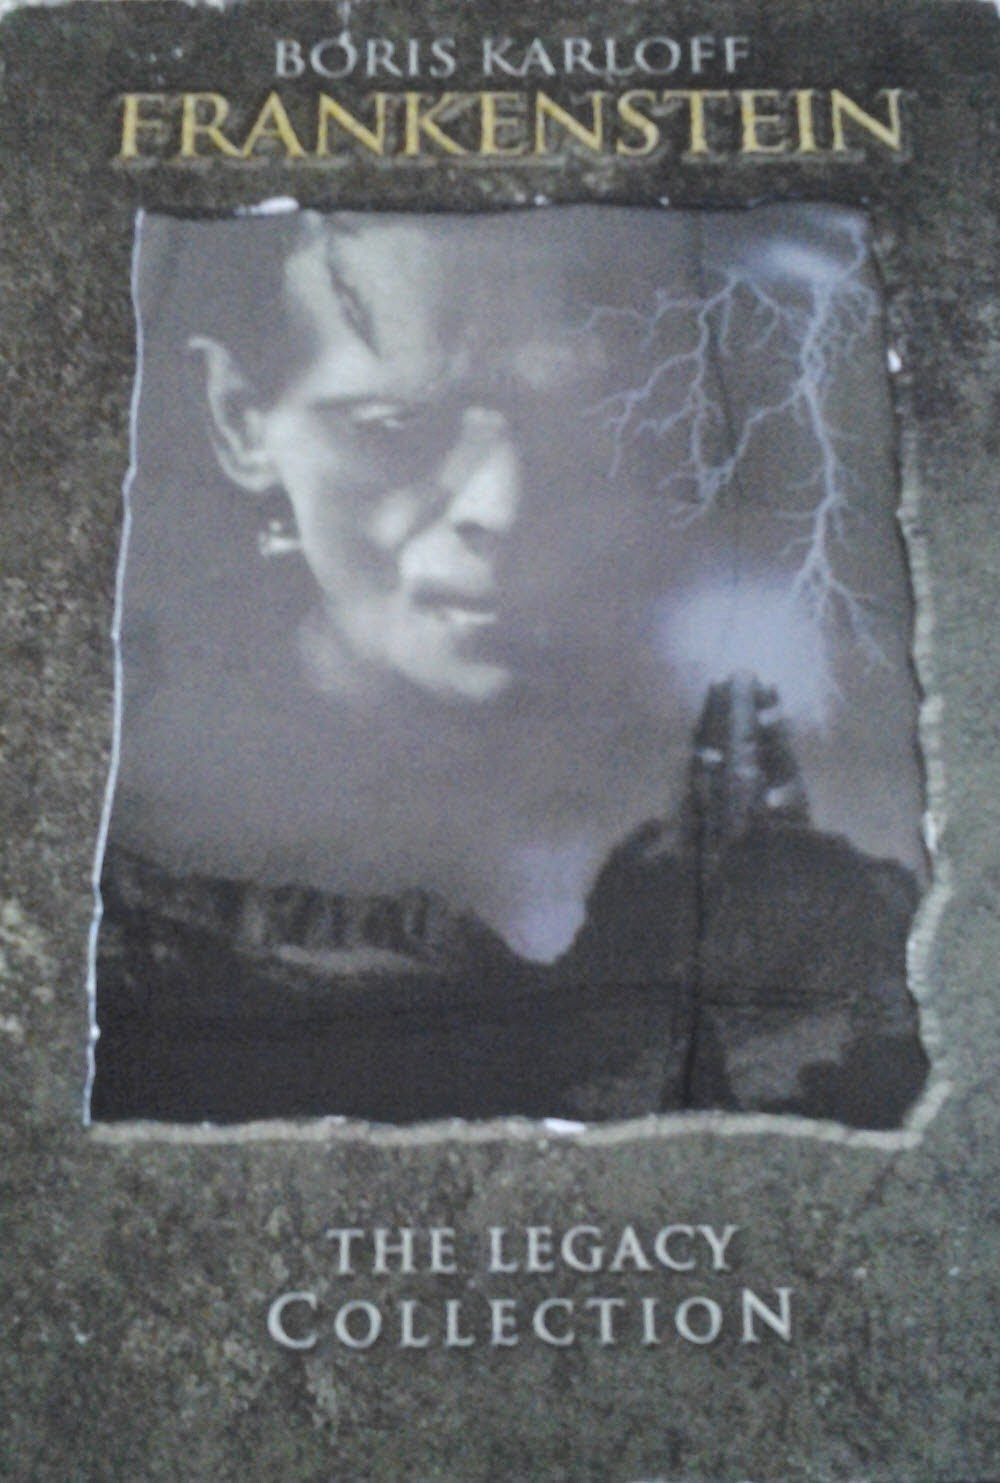 DVD Cover - Frankenstein 1931